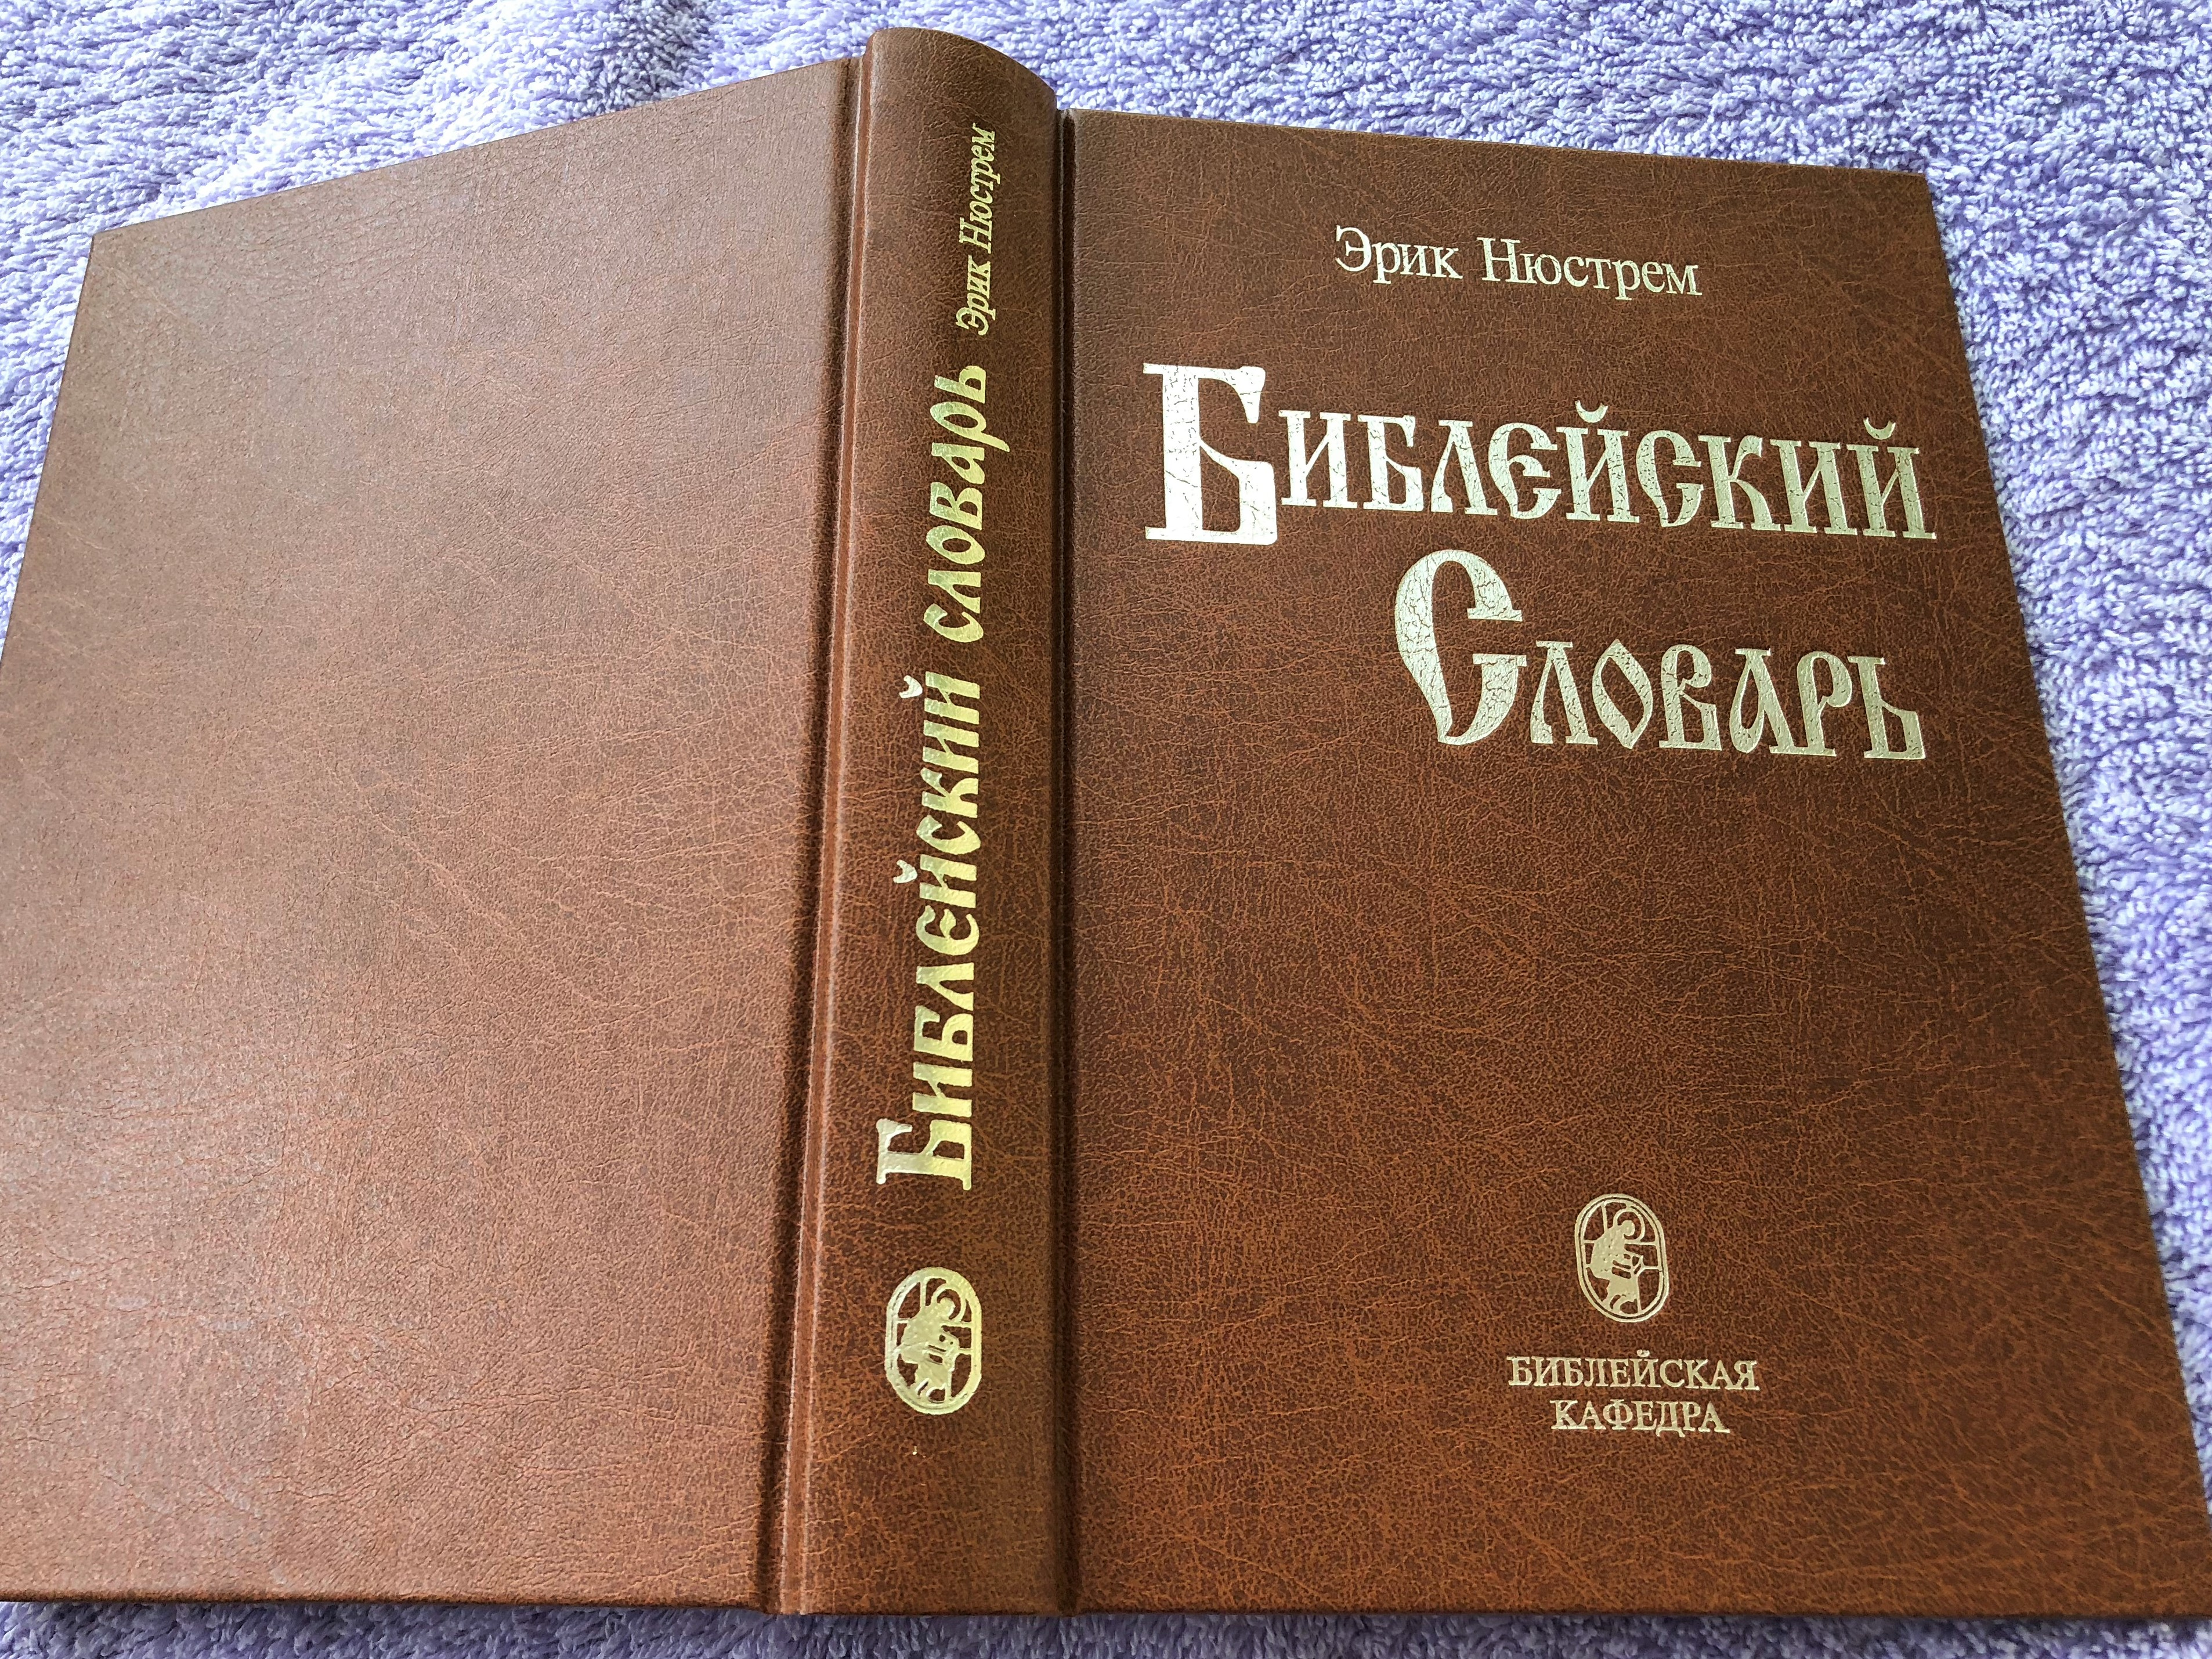 russian-bible-dictionary-encyclopedic-dictionary-in-russian-compiled-by-eric-nustrem-4-.jpg